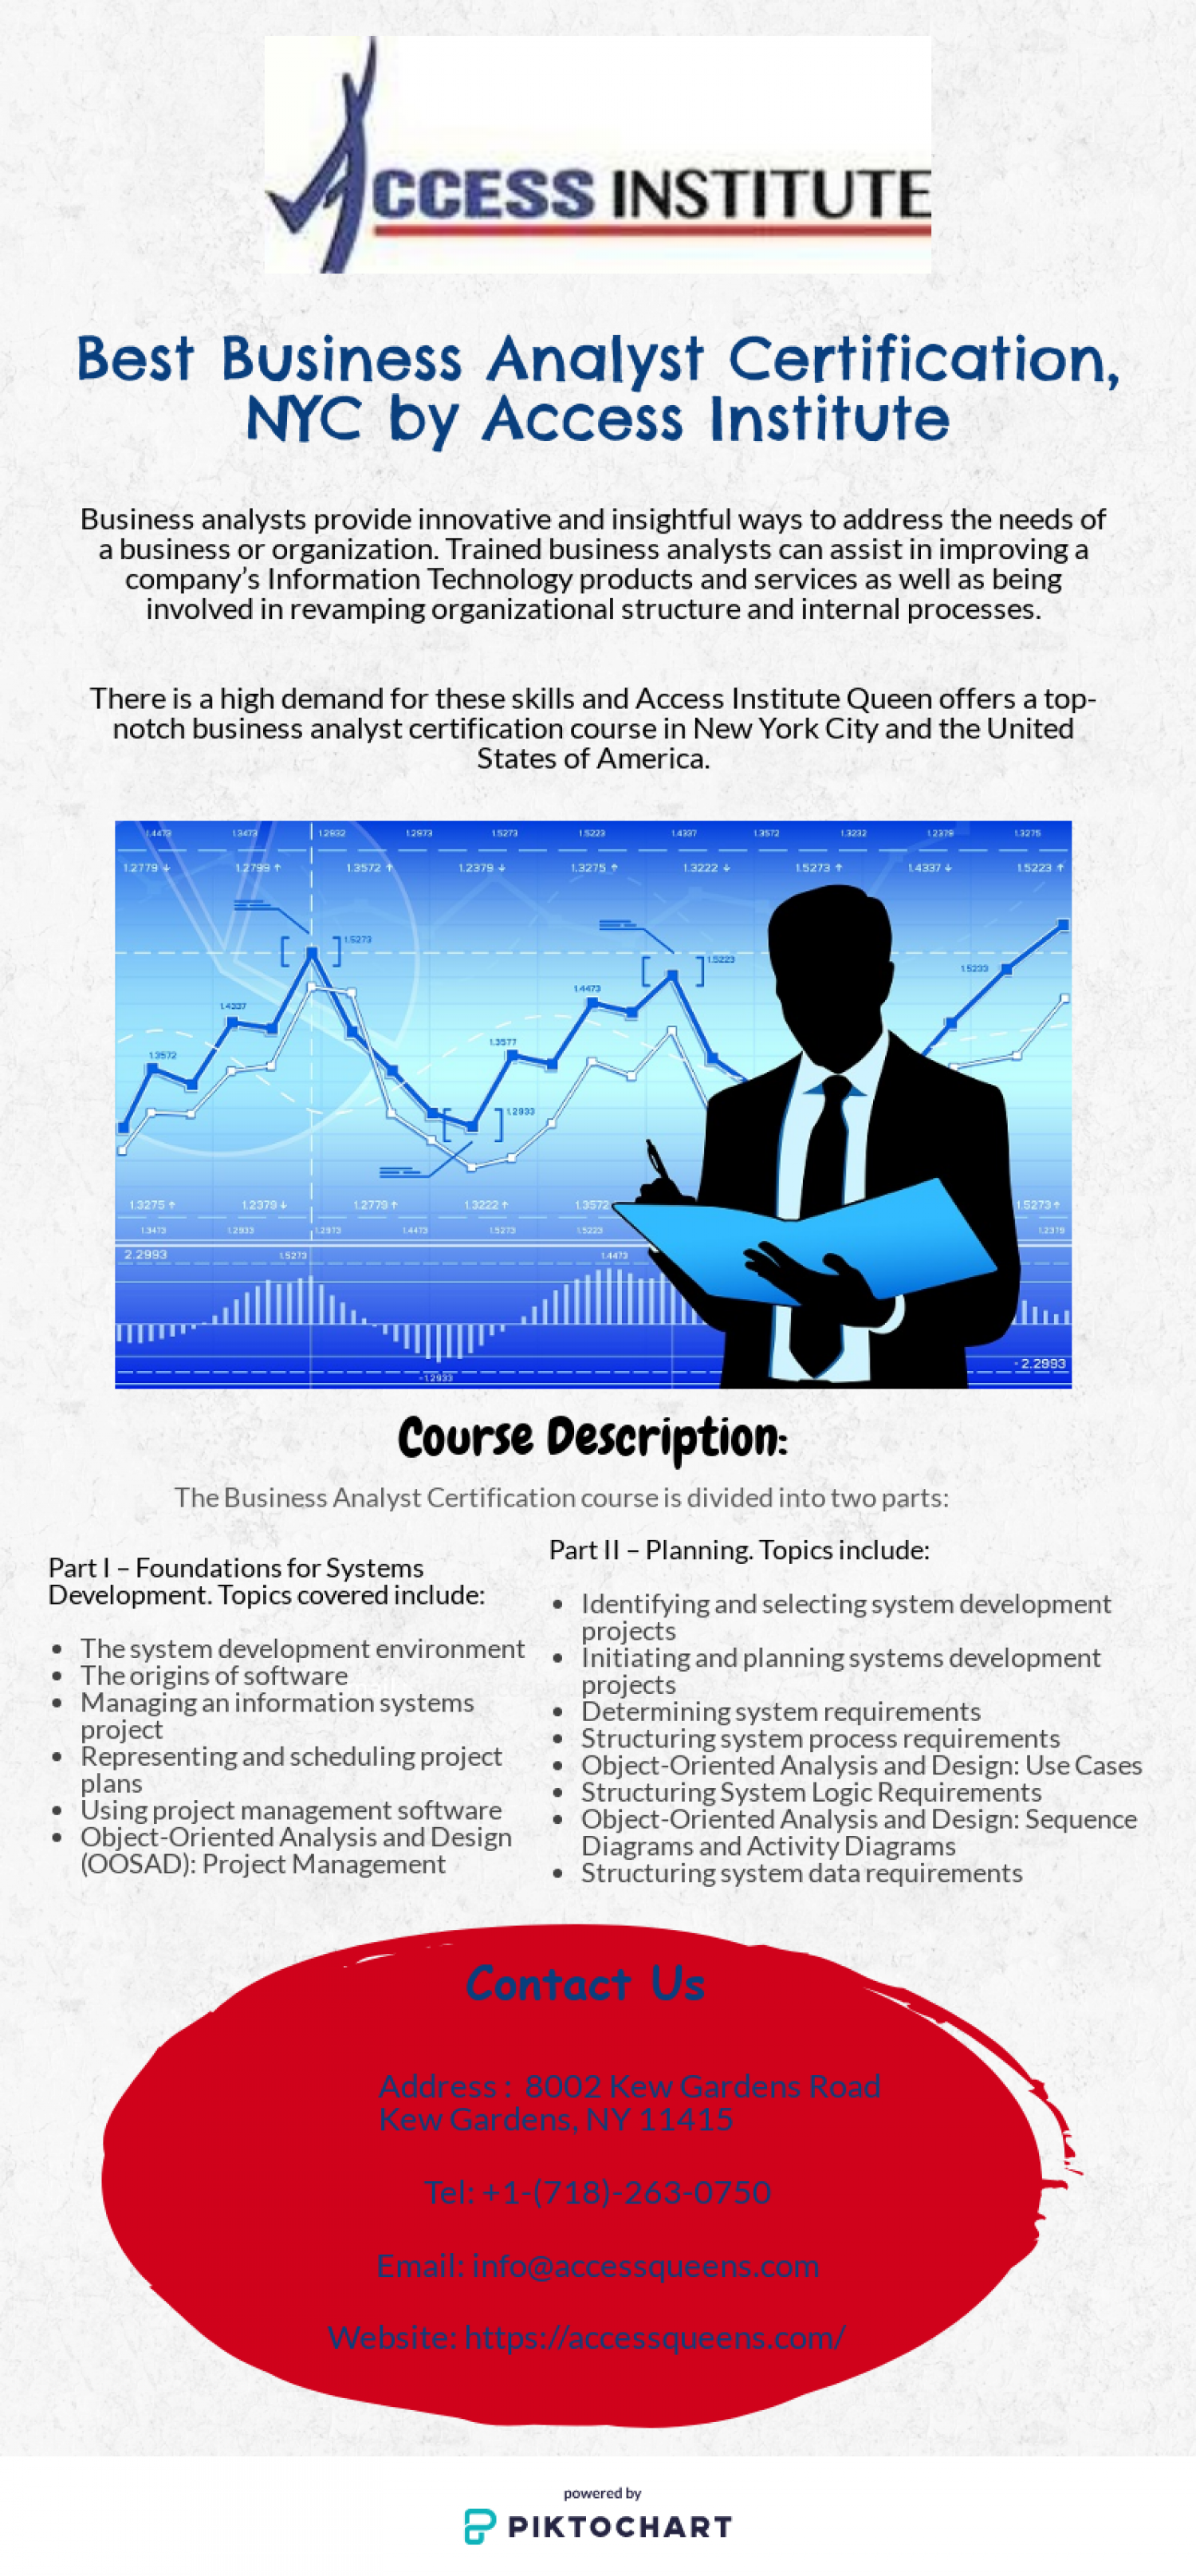 Best Business Analyst Certification, NYC by Access Institute Infographic